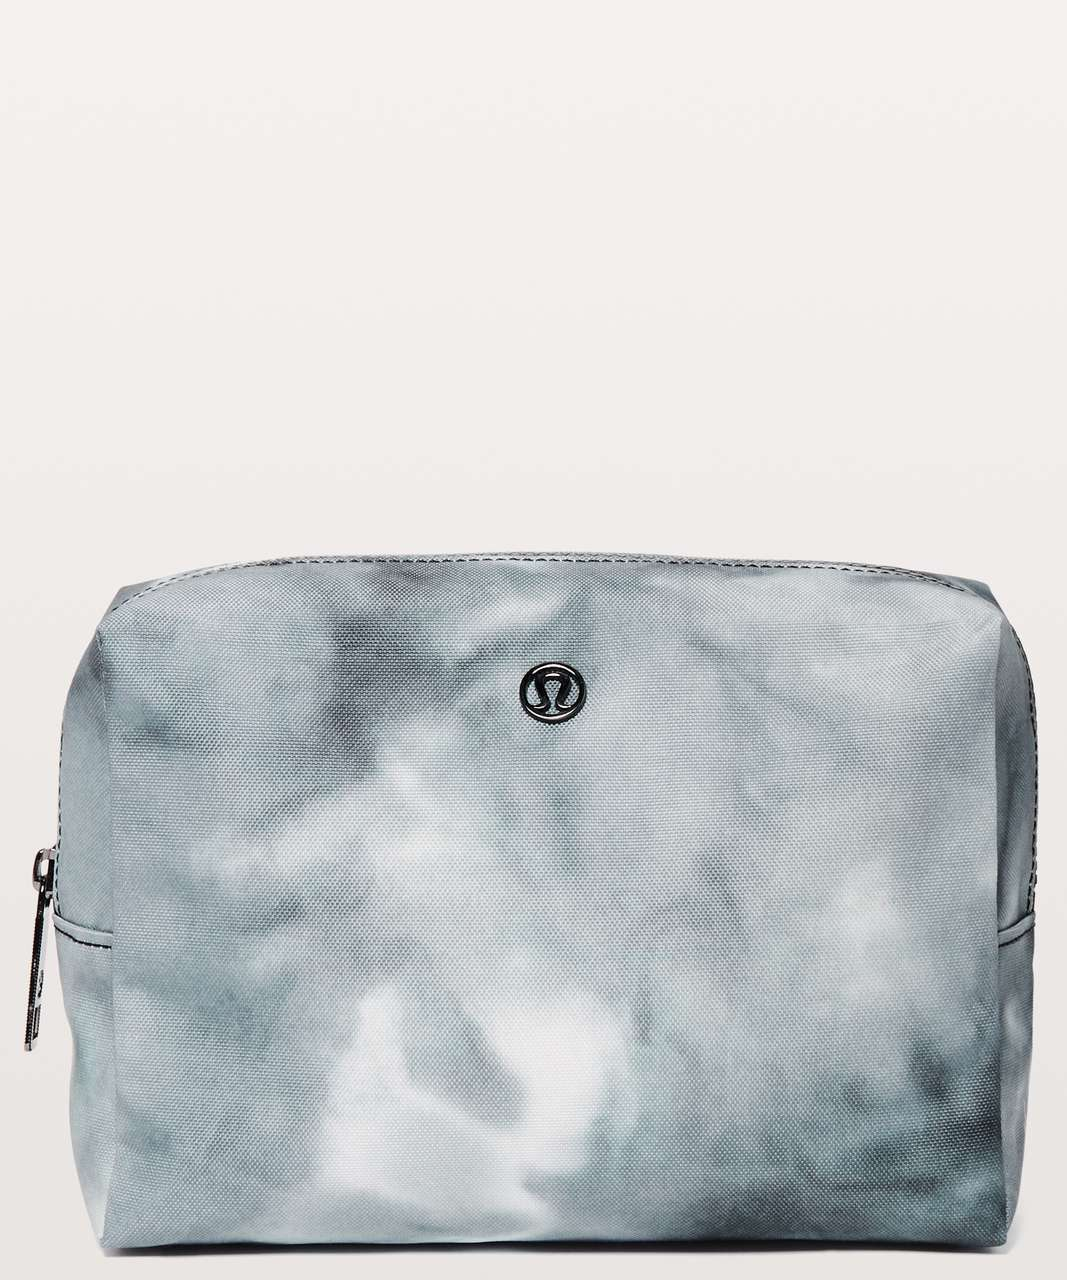 Lululemon All Your Small Things Pouch *4L - Spray Dye Grey Multi / Black